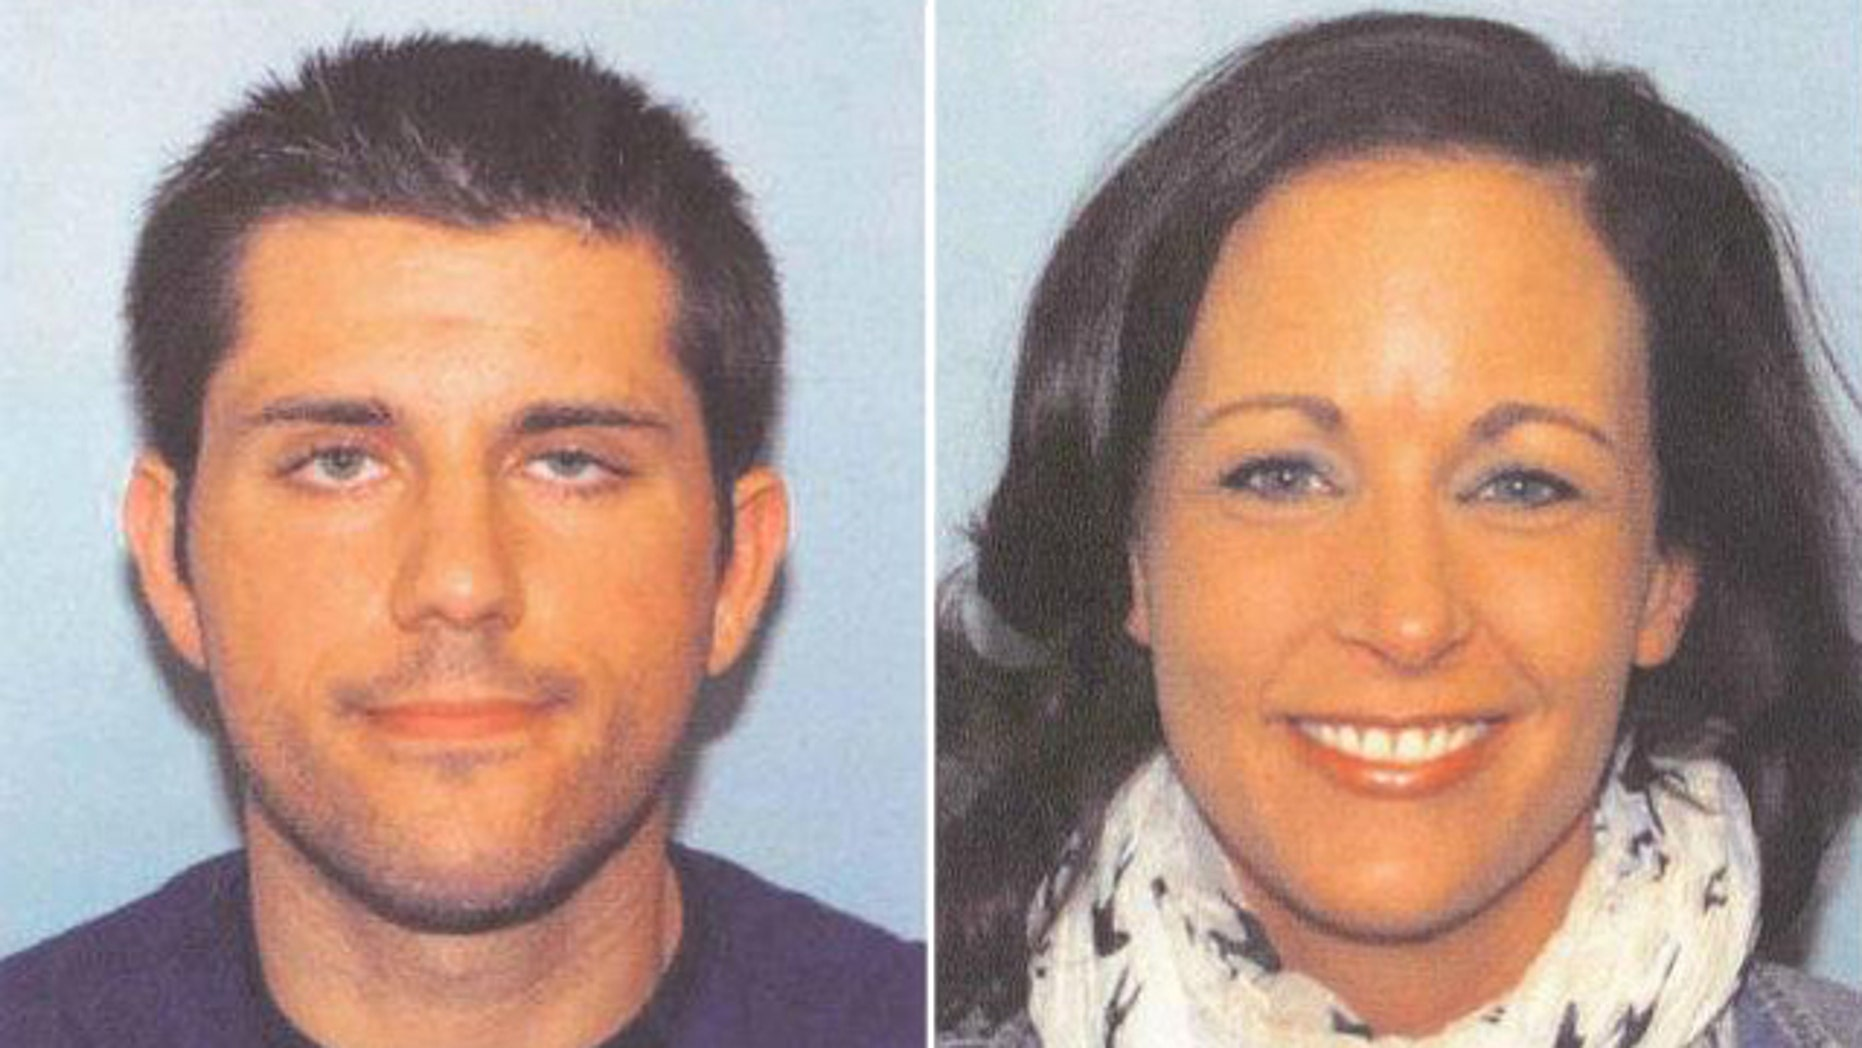 Police have issued an arrest warrant for Nathan Summerfield, left, after Lynn Jackenheimer, right, was found dead in North Carolina's Outer Banks.